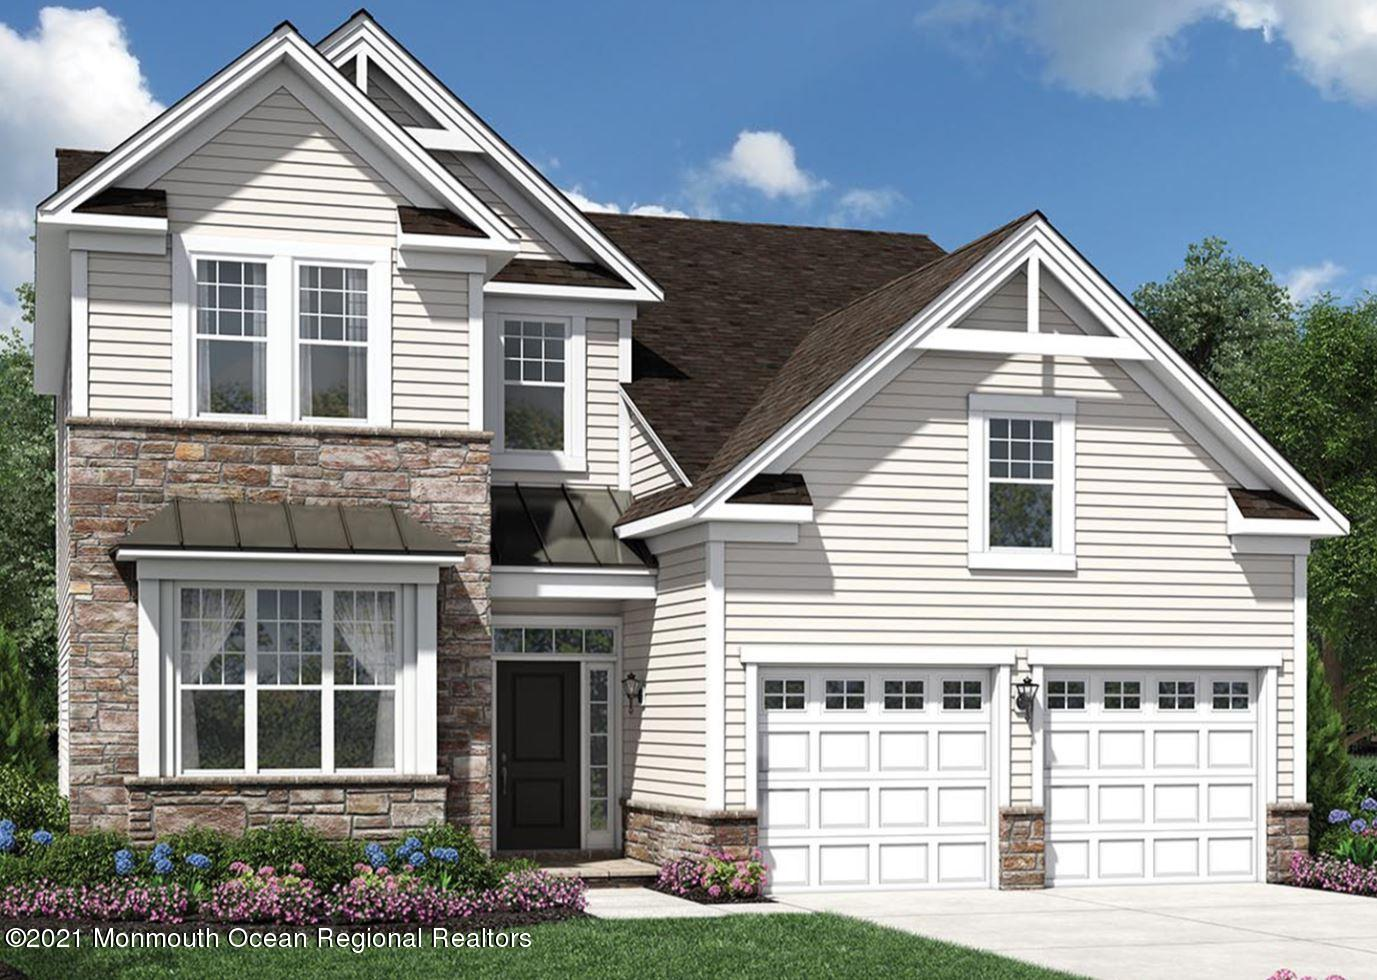 Don't miss out on the opportunity to make Sea Breeze at Lacey home. Come take a look. Only 3 homes remain! This Farmington Devonshire Quick Delivery Home is now under construction to be delivered summer 2021. The Devonshire is one of our newest elevations for a fresh look! This quality-built Farmington features an expanded two-story great room with fireplace and a beautifully designed peninsula kitchen leading to the formal dining room. The tucked away expanded primary bedroom suite with tray ceiling, offers a walk-in closet, luxurious bath with an expanded shower option. This home also features 2 additional bedrooms, 3 full baths, office, expanded garage and walk-in attic storage. Enjoy your back porch in spring, summer and fall on a magnificent private wooded homesite. This home also features 2 additional bedrooms, 3 full baths and office, an expanded garage and walk-in attic storage. Enjoy your back porch in spring, summer and fall on a magnificent private wooded homesite.